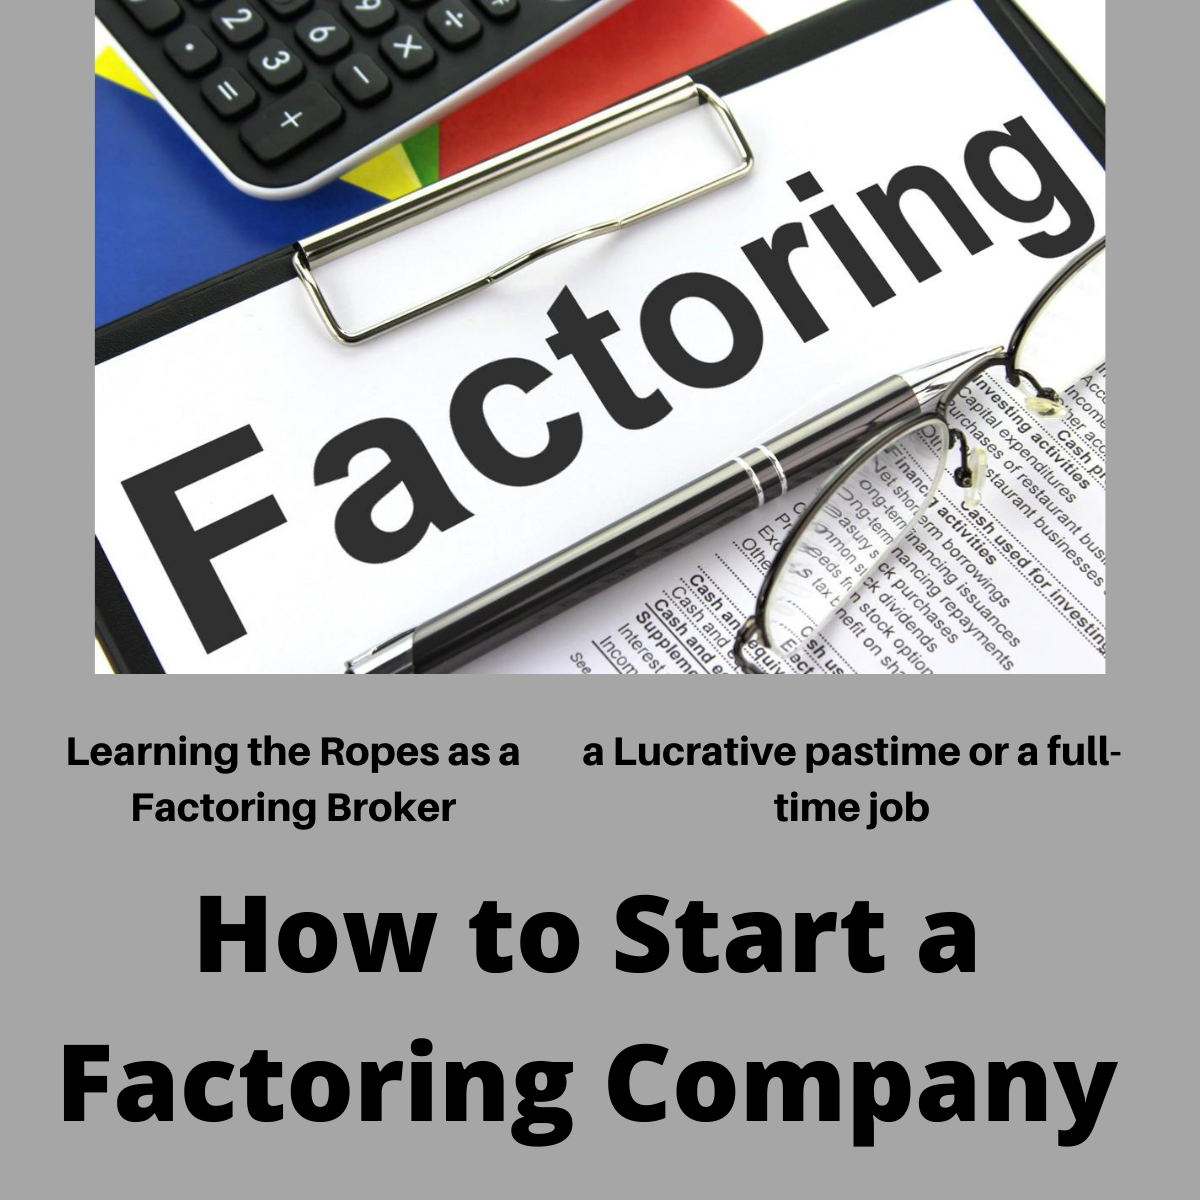 How to Start a Factoring Company